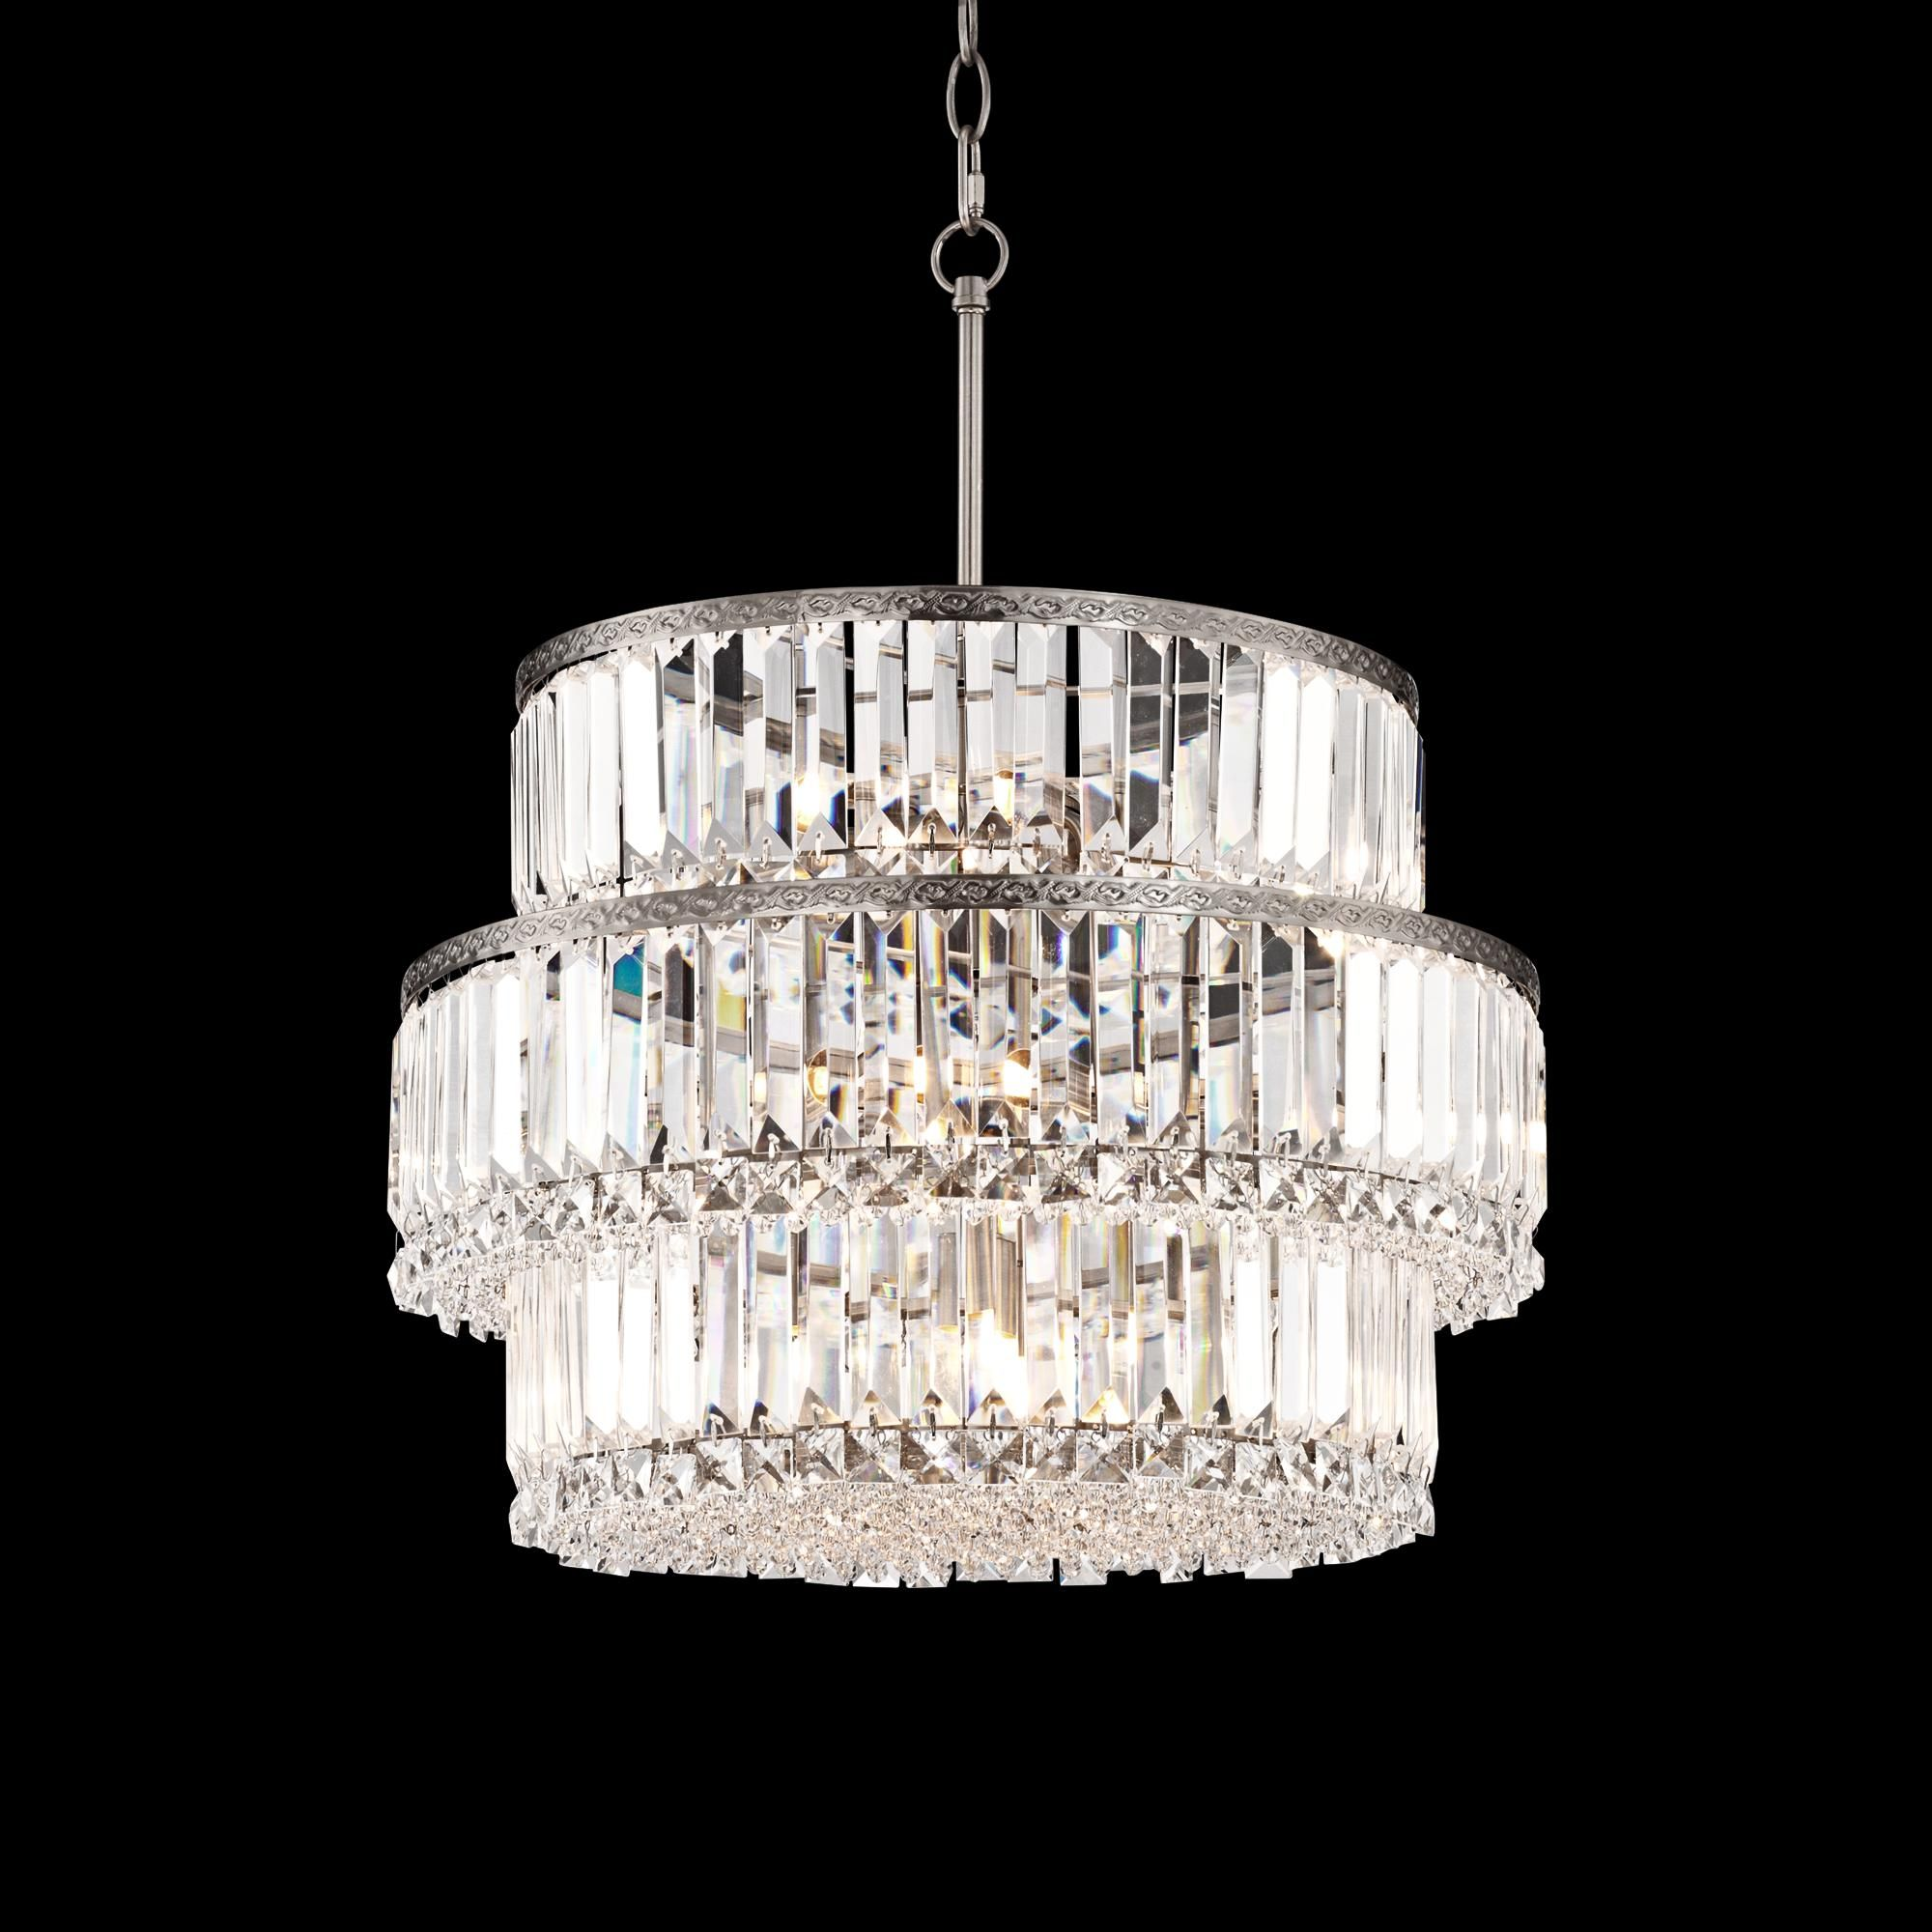 Rochelle 20 12 wide halogen light crystal chandelier bathroom magnificence 20 12 wide halogen light crystal chandelier 1d964 lamps plus arubaitofo Image collections